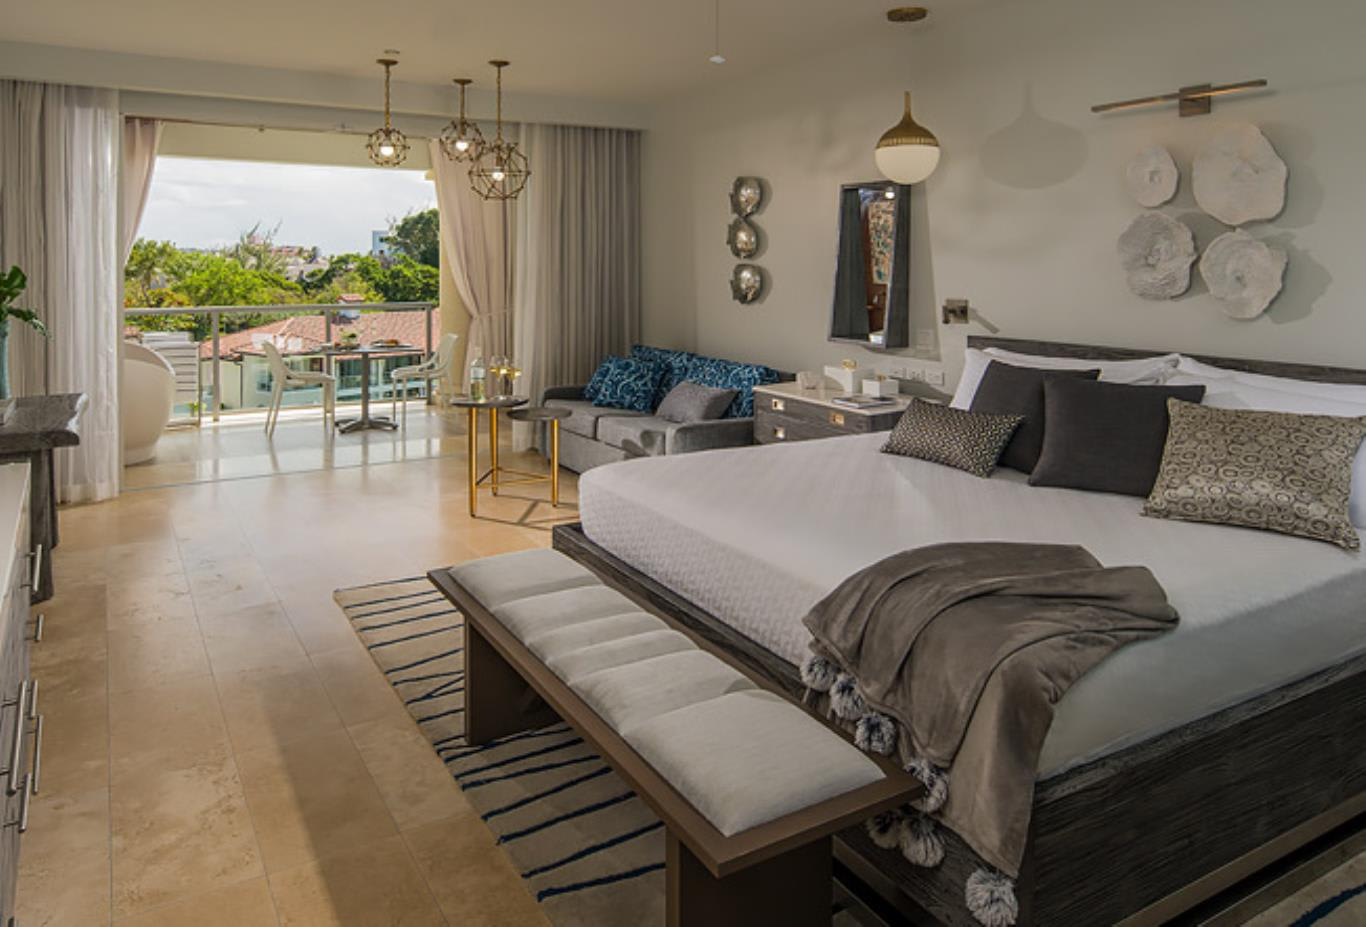 PSLB Royal Seaside Penthouse Oceanview Crystal Lagoon Club Level Barbados Suite with Balcony Tranquillity Soaking Tub bedroom